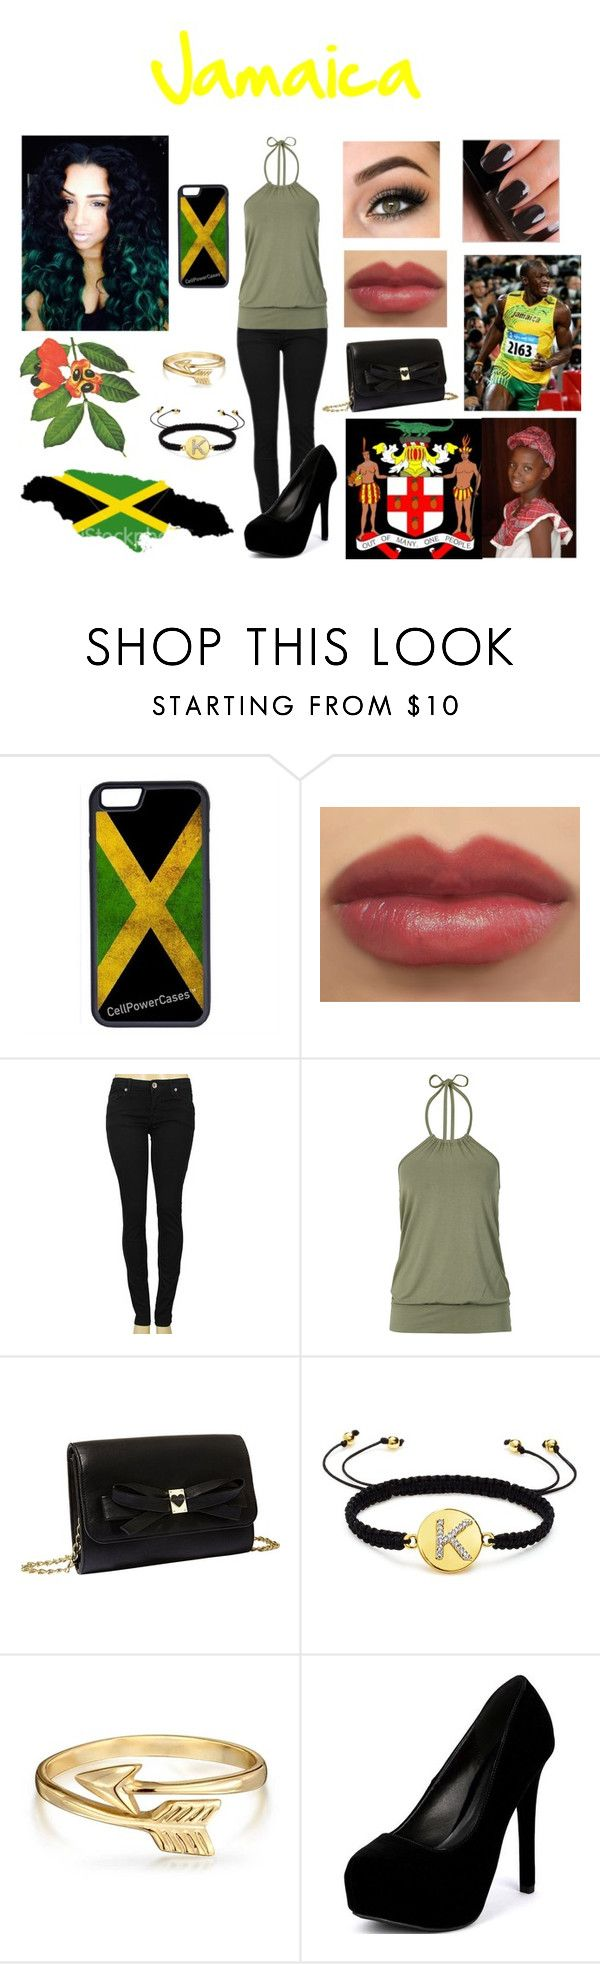 """Jamaica's Independence Day"" by superkaci-gordon ❤ liked on Polyvore featuring moda, CellPowerCases, Machine, Chanel, Betsey Johnson, Juicy Couture, Bling Jewelry y Qupid"